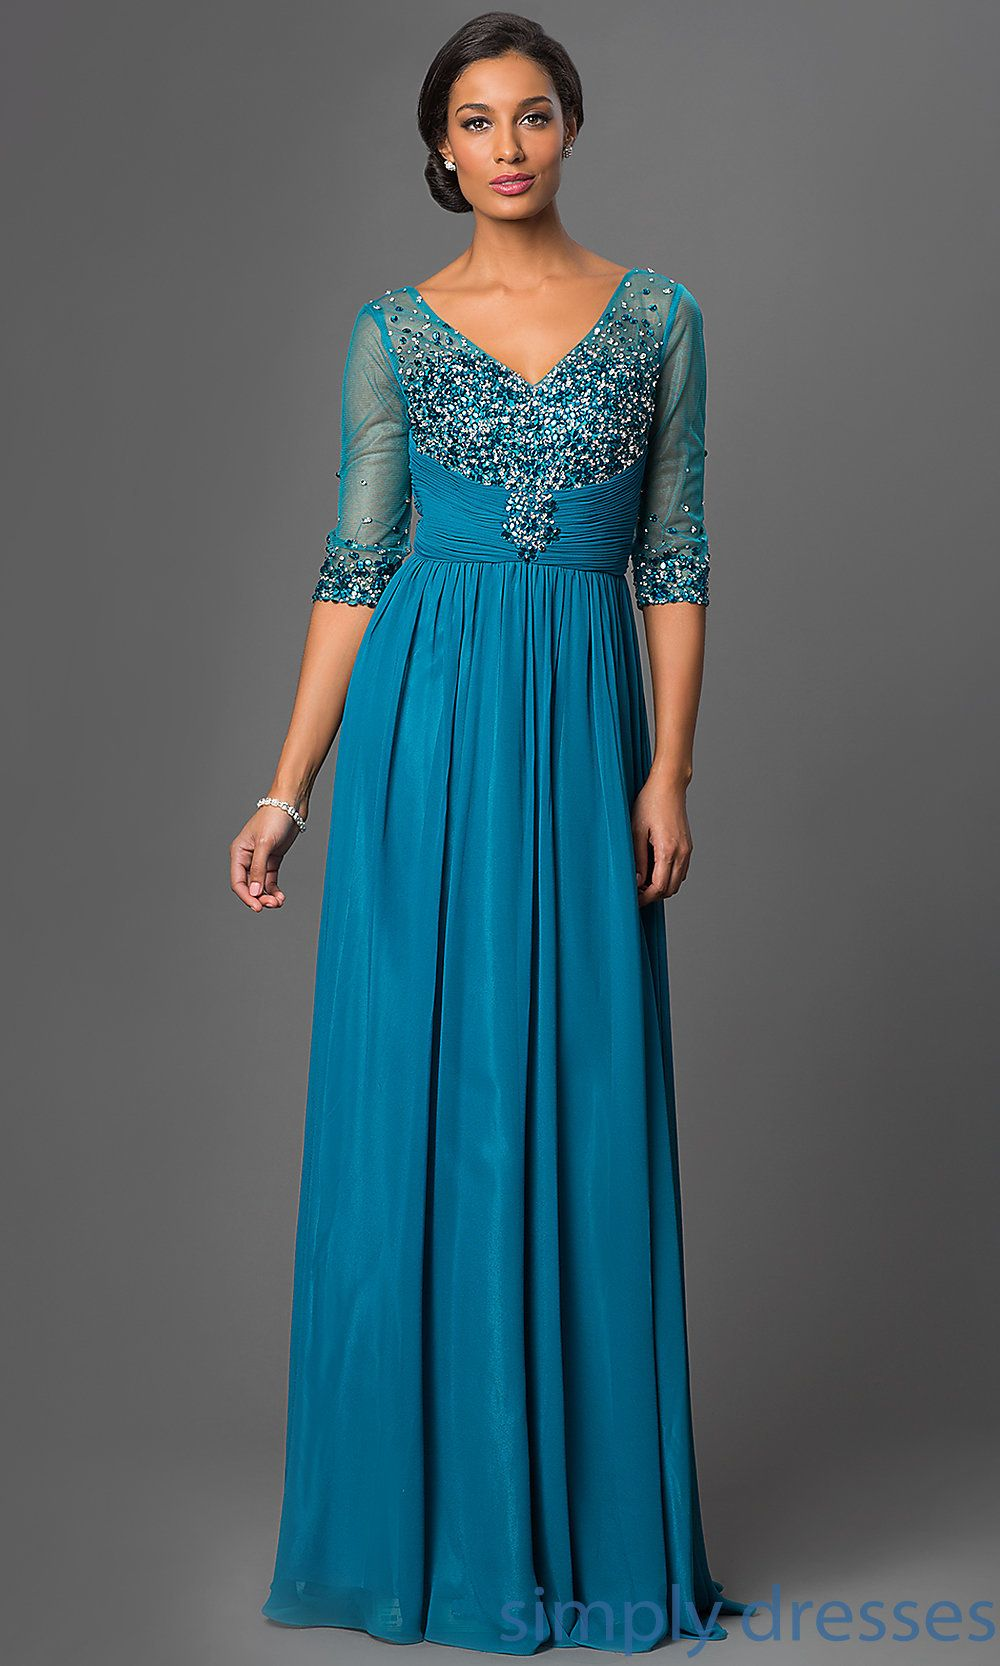 Silver Plus-Size Long Formal Dress with Sleeves | Blue dresses ...